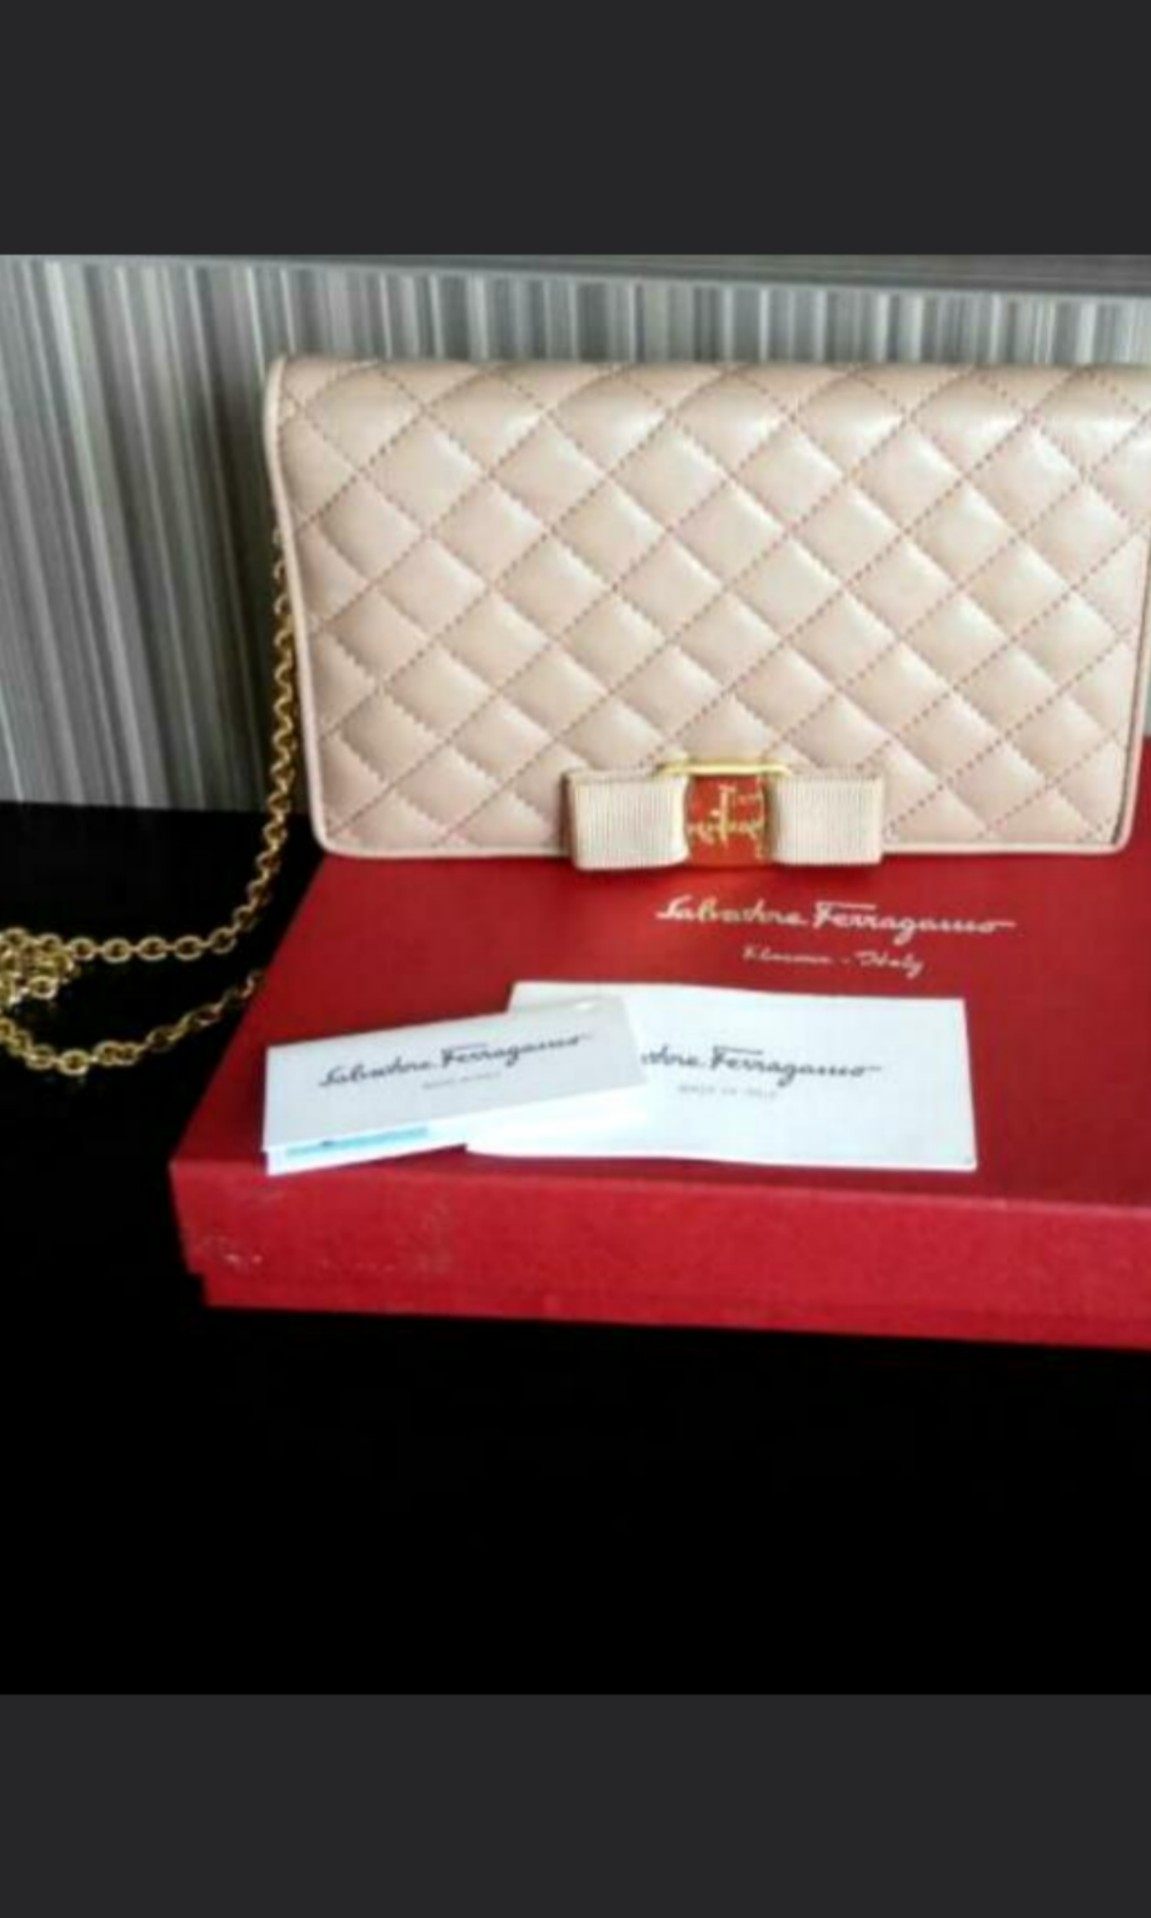 99dc7a15b636 Raya sale Authentic preloved Ferragamo wallet on chain  sling ...